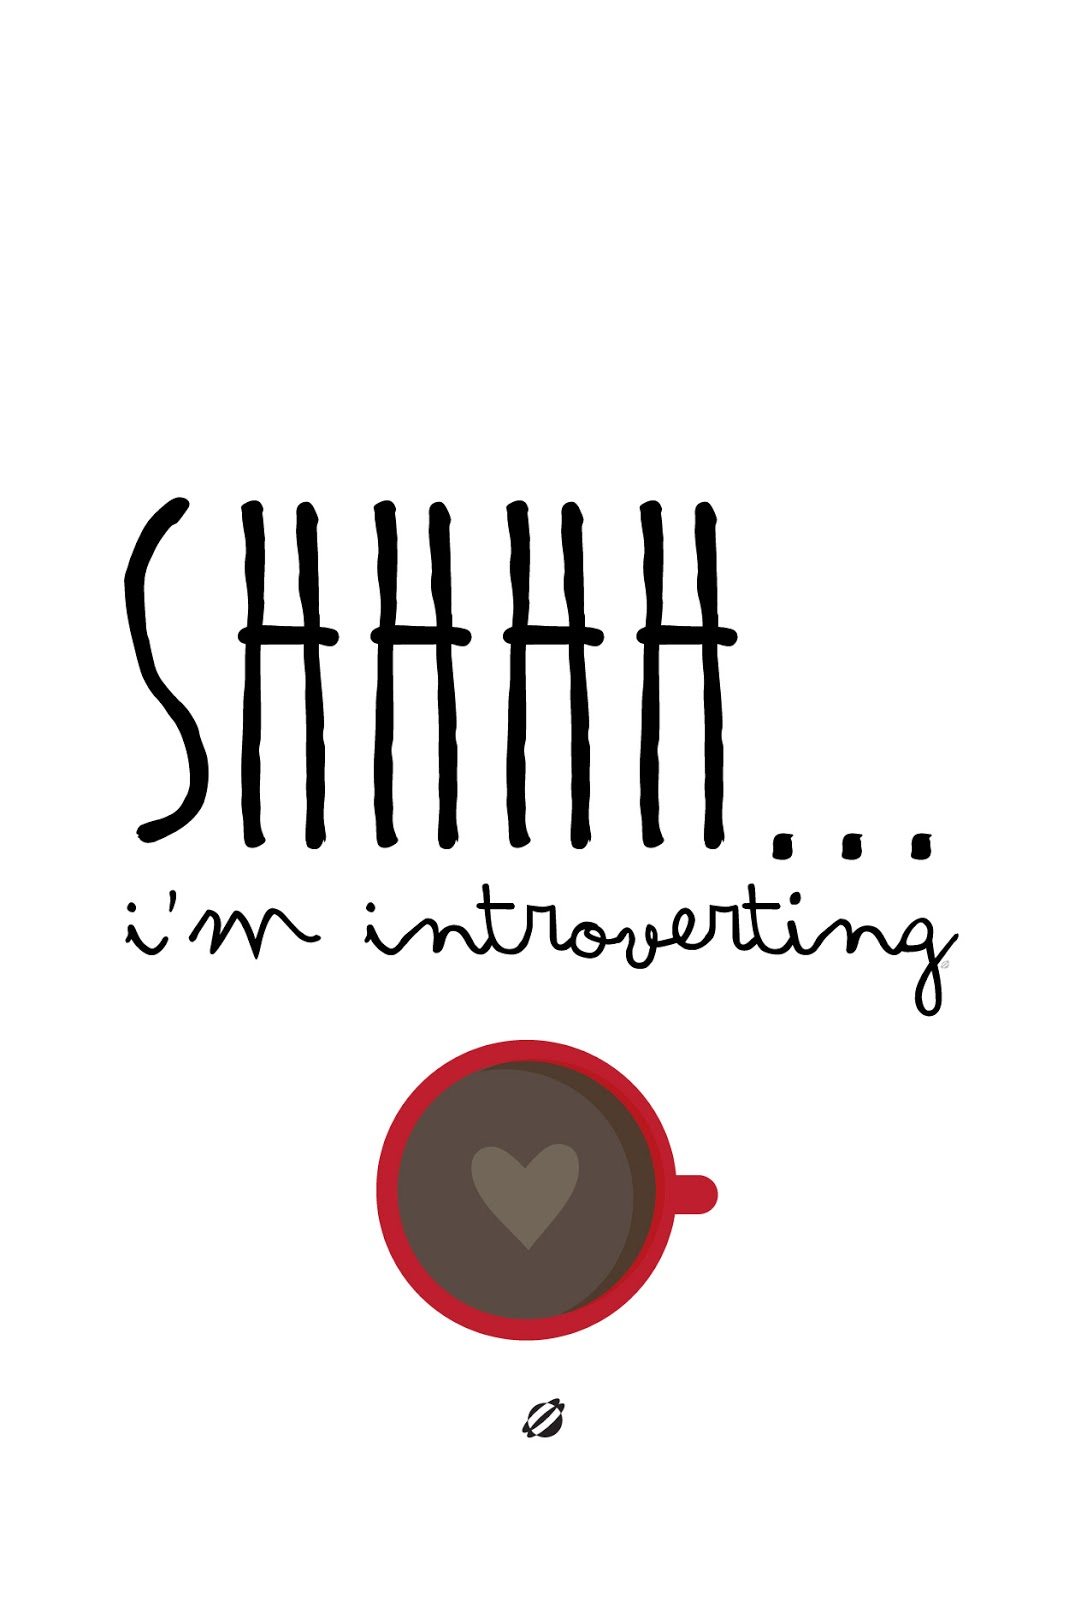 LostBumblebee ©2015 MDBN :: Shhhh... I'm Introverting :: Free - Donate to Download - Printable :: Personal Use Only. Coffee, Home Decor, LostBumblebee